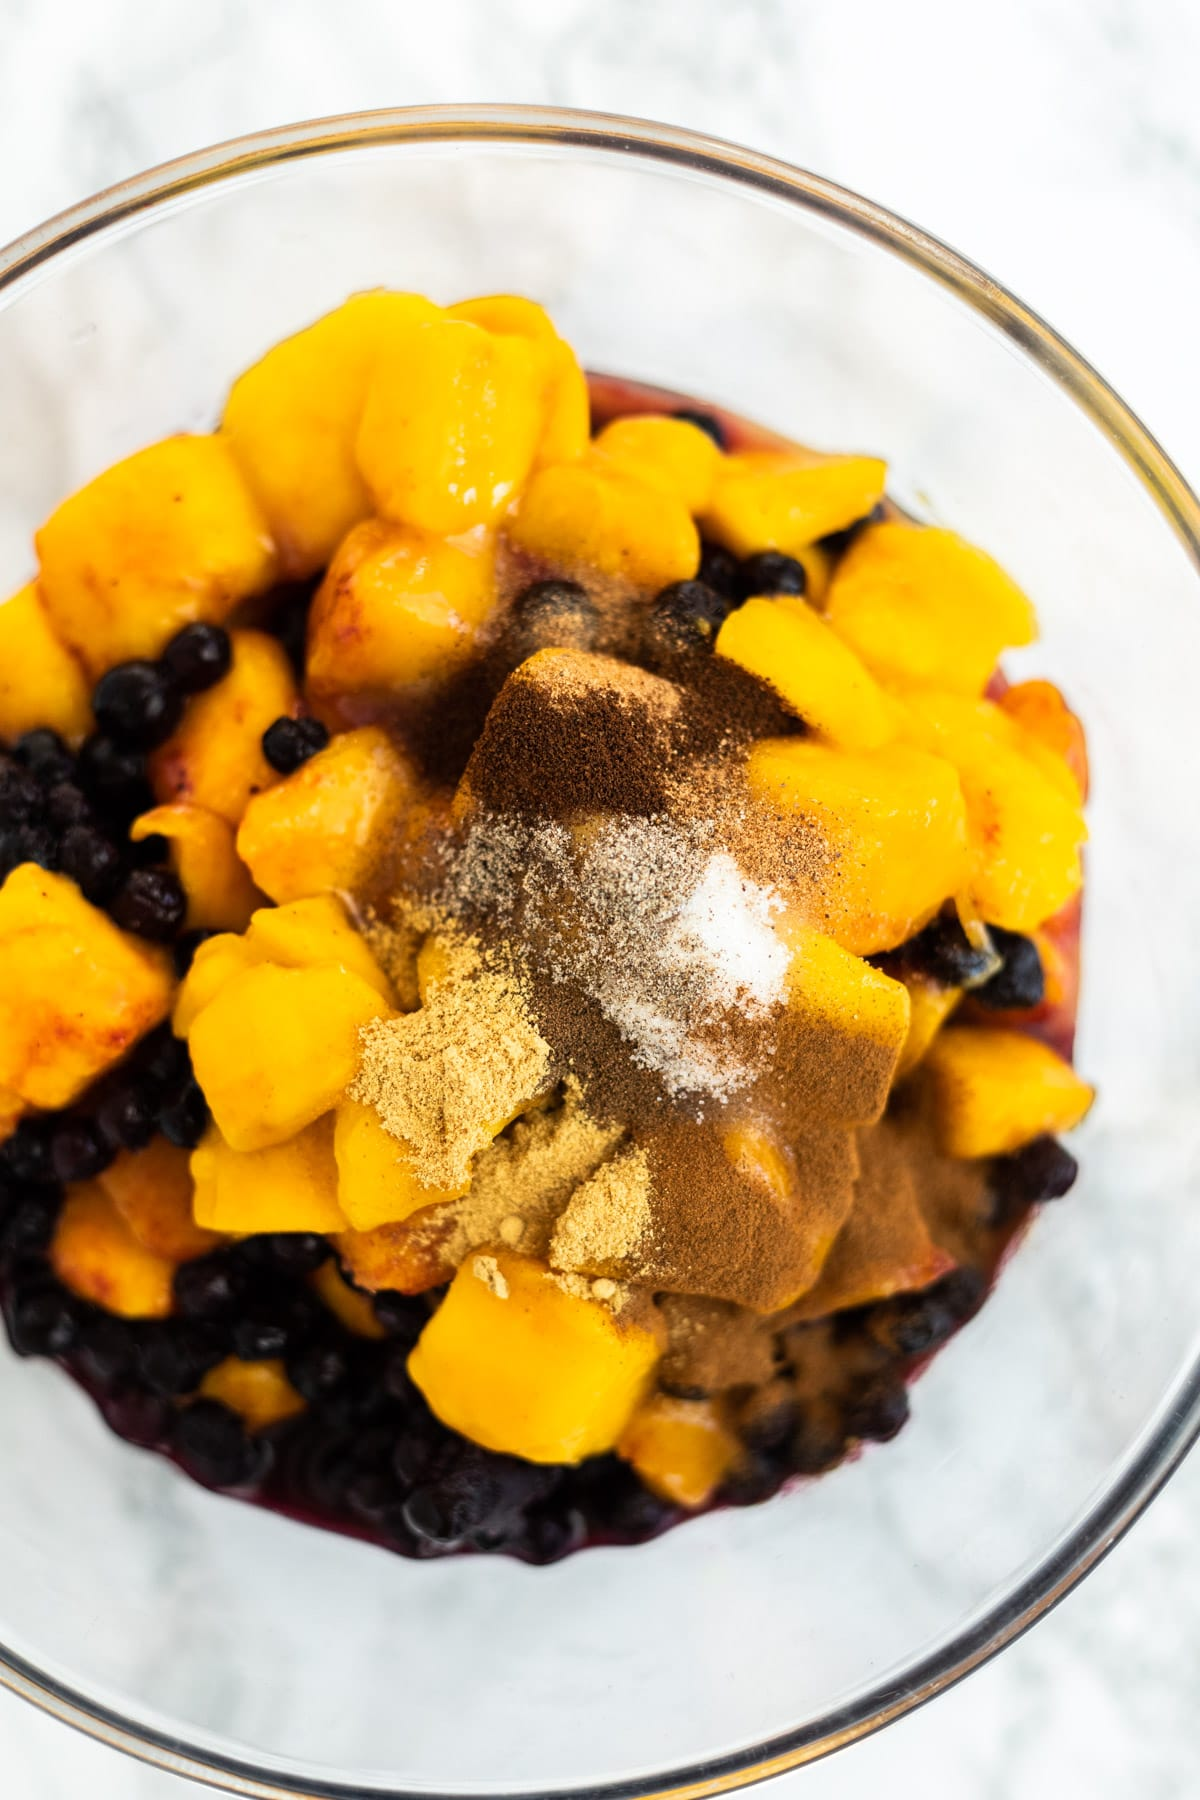 A top down view of a bowl of mangos and blueberries topped with sugar and spices.